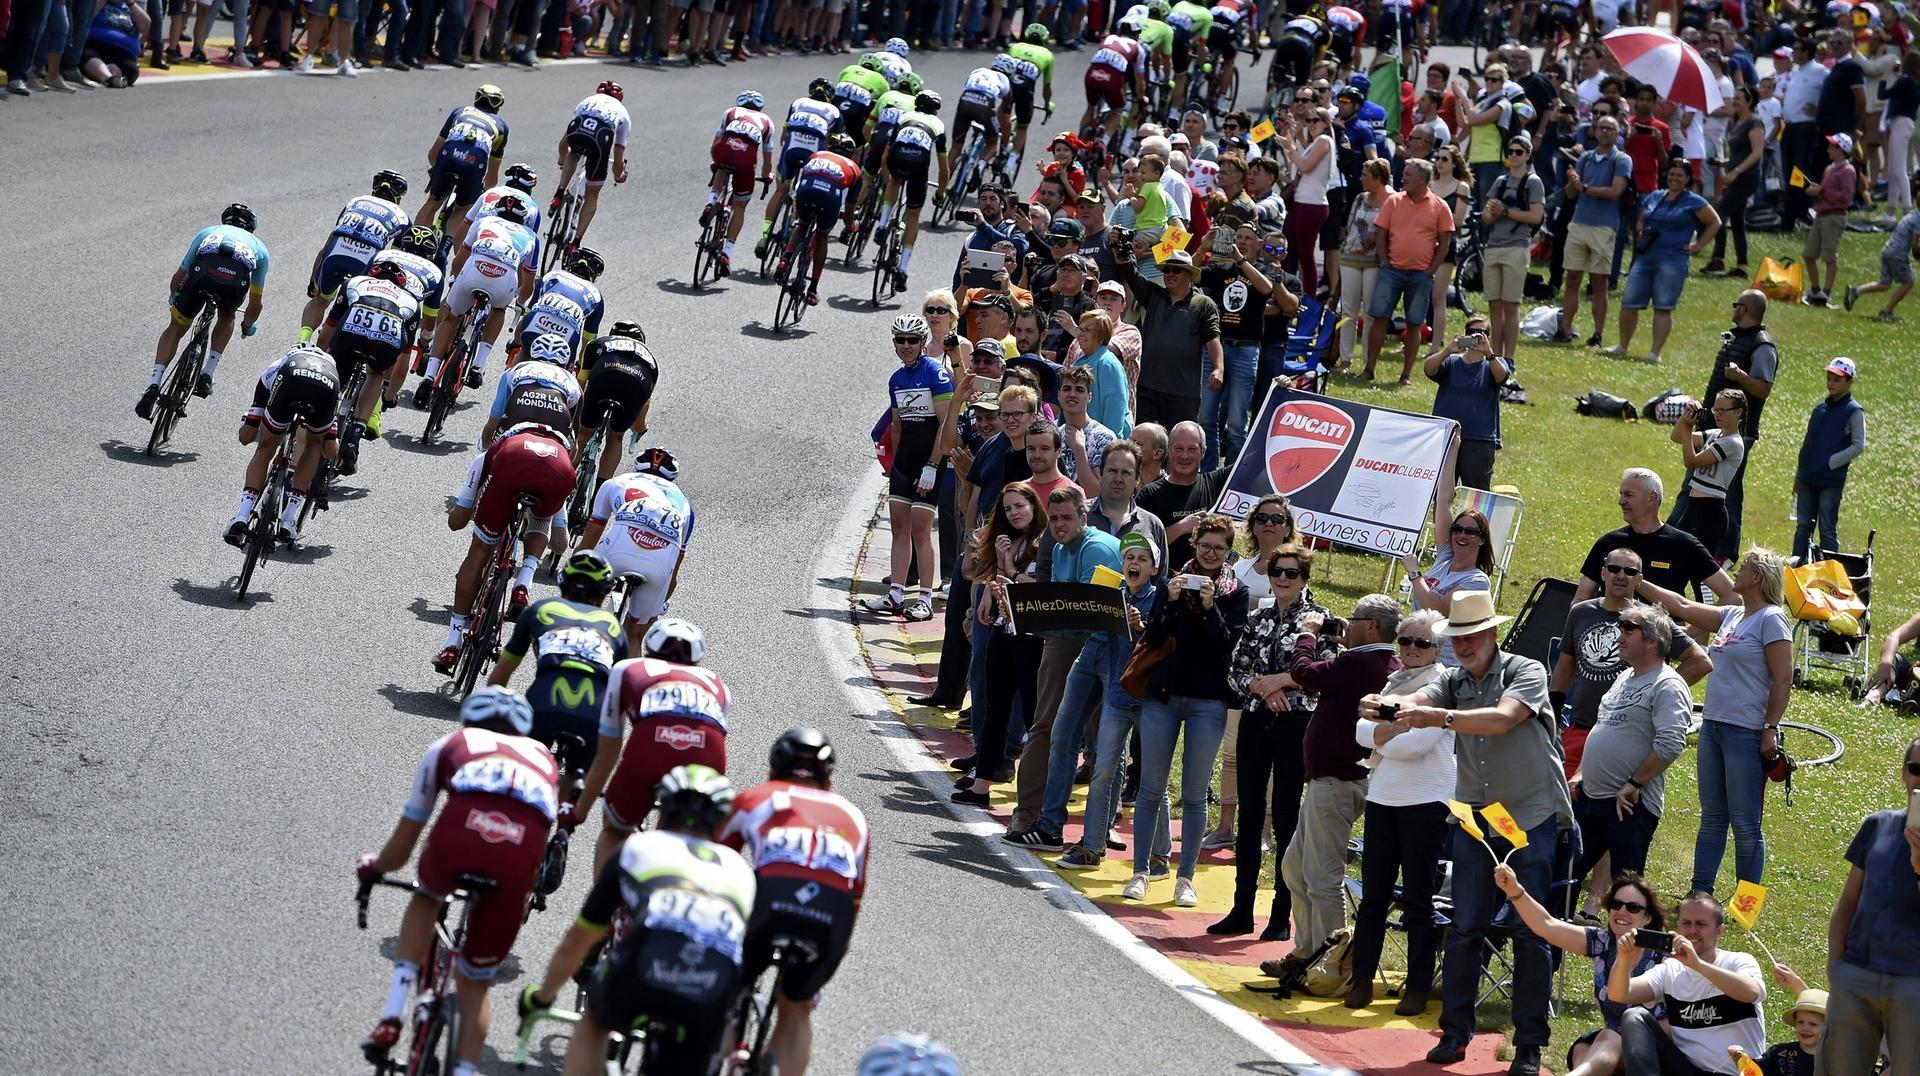 9. Etappe: Nantua - Chambéry: Tour de France im Live-Ticker. LONGWY LUXEMBOURG JULY 3 Illustration picture of the peloton passing on the famous race circuit (Quelle: Photo News Panoramic)